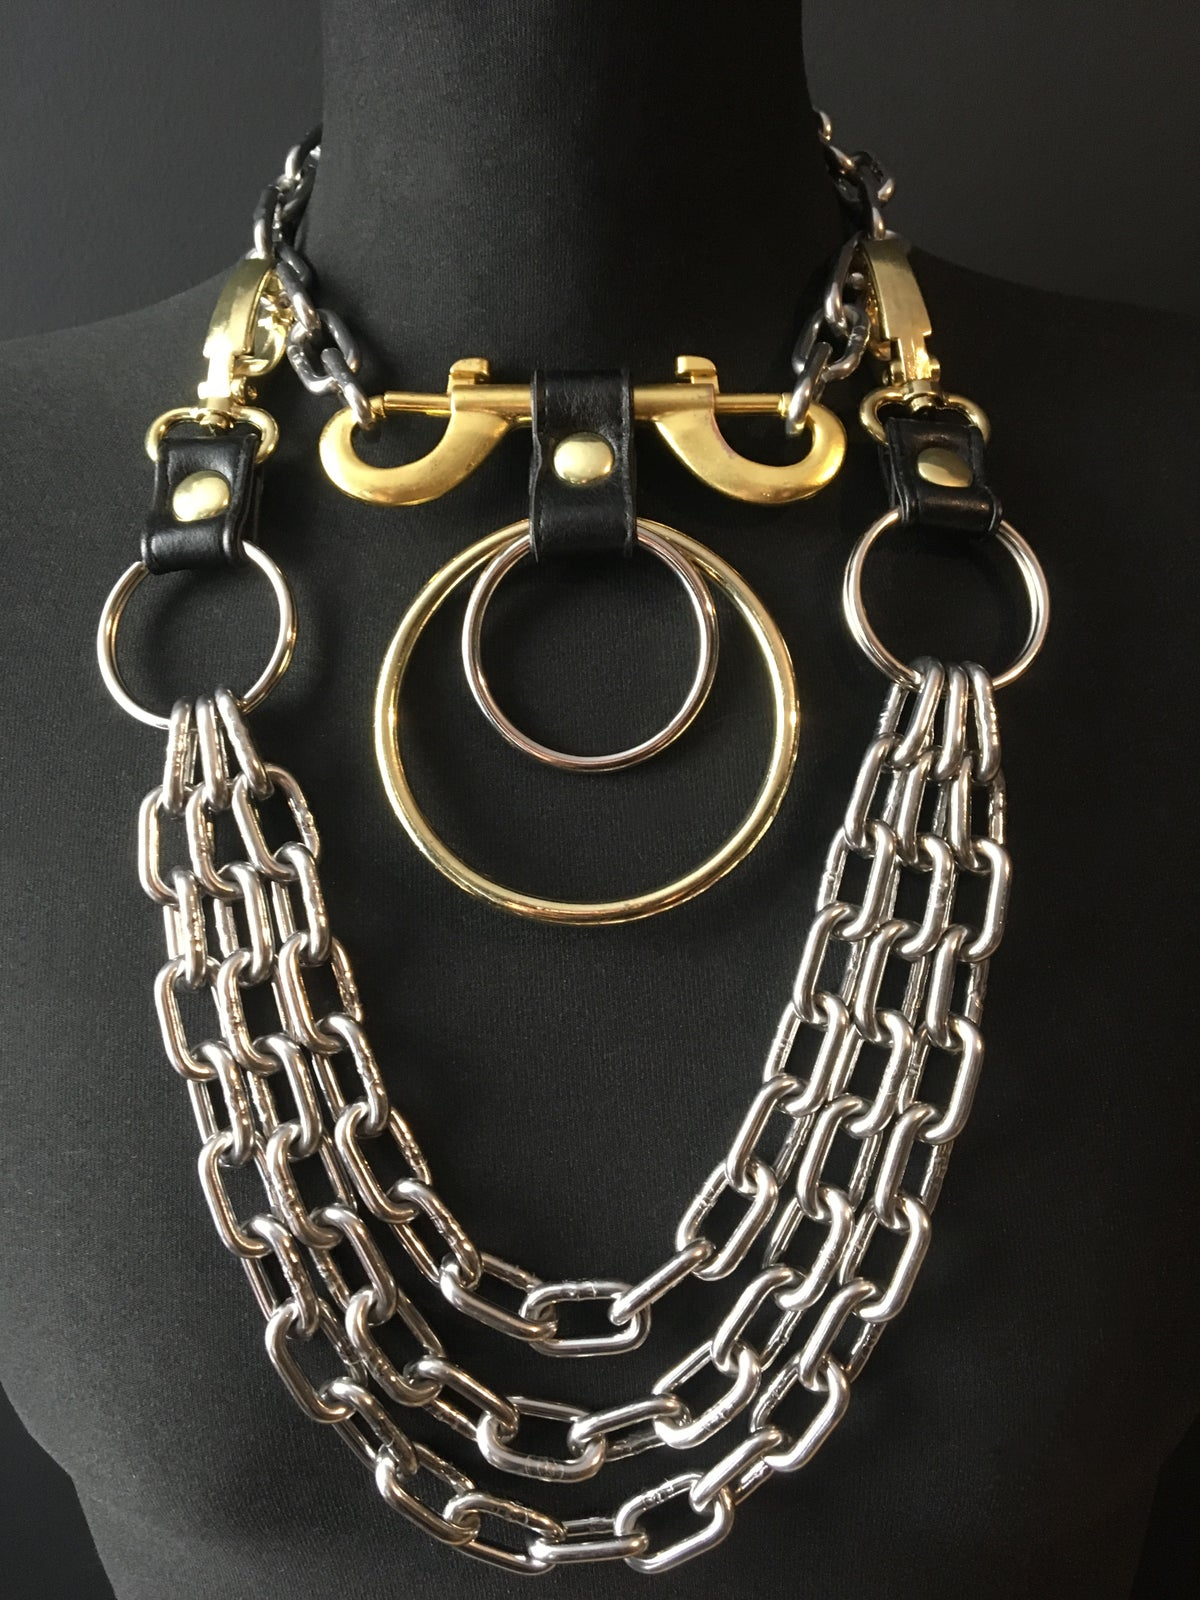 Double ring necklace silver and gold